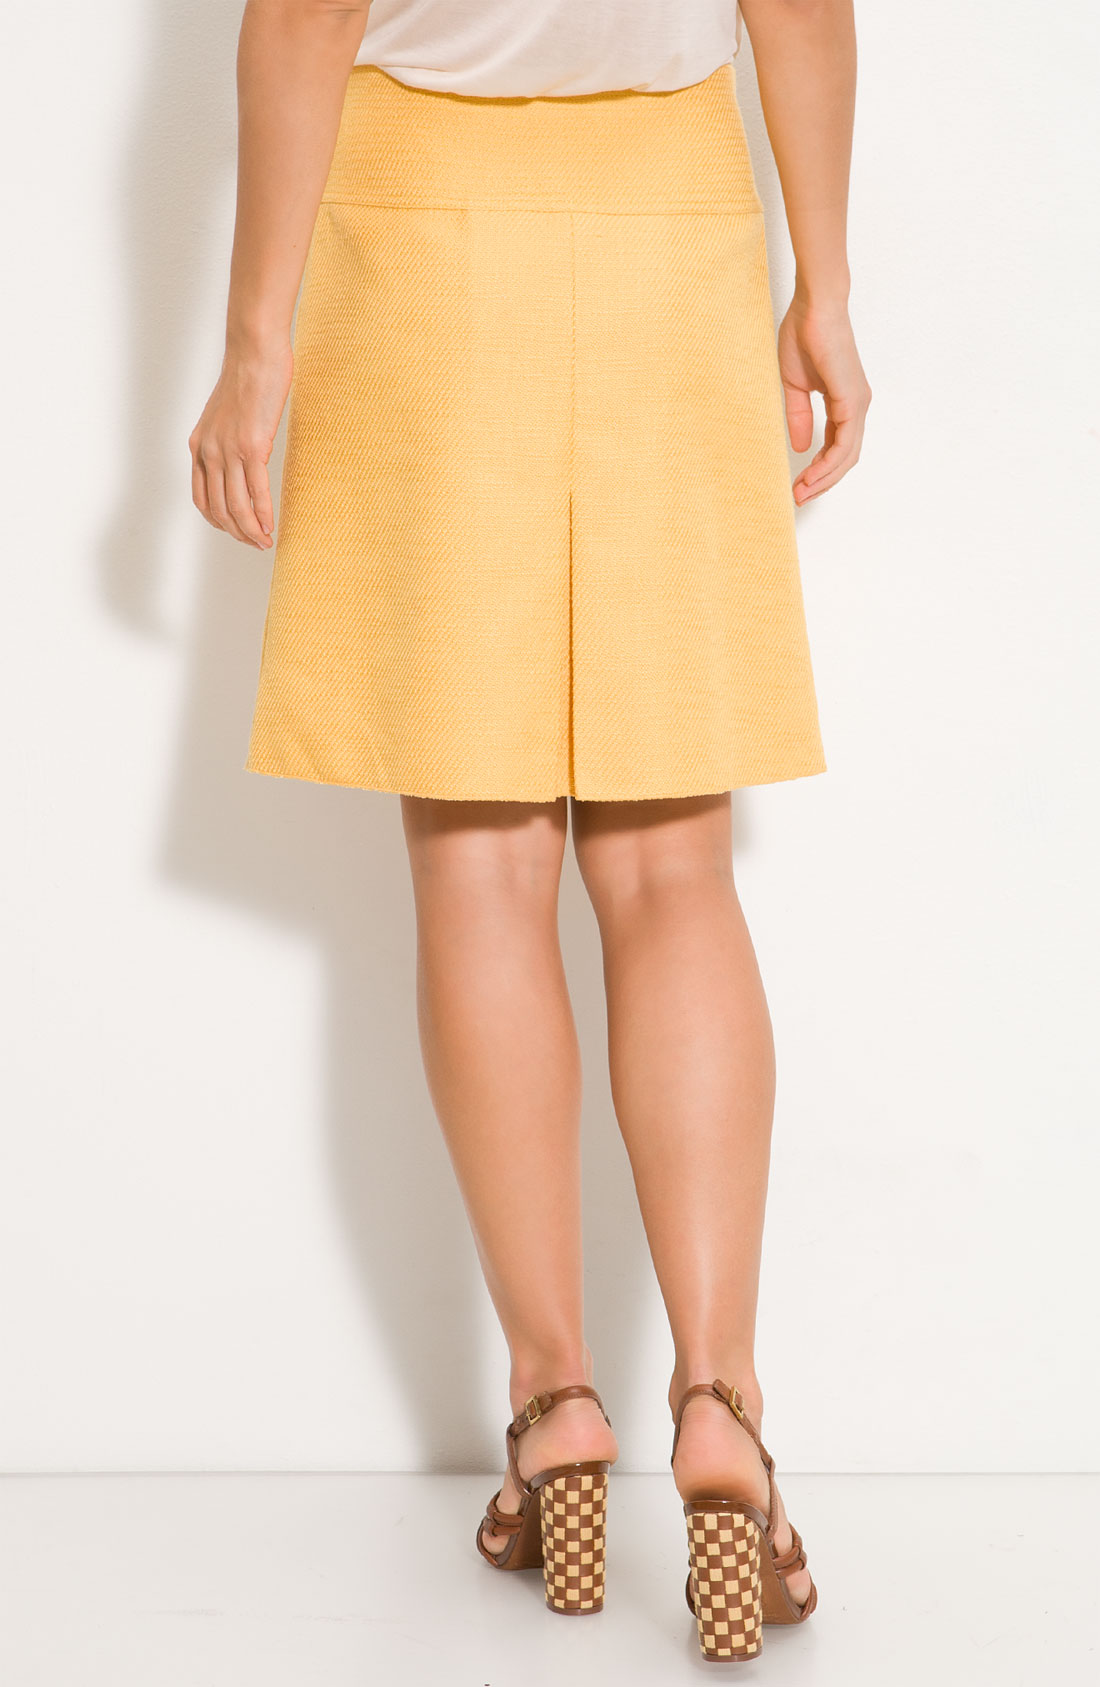 tory-burch-misted-yellow-baelee-skirt-product-3-2554418-915654630